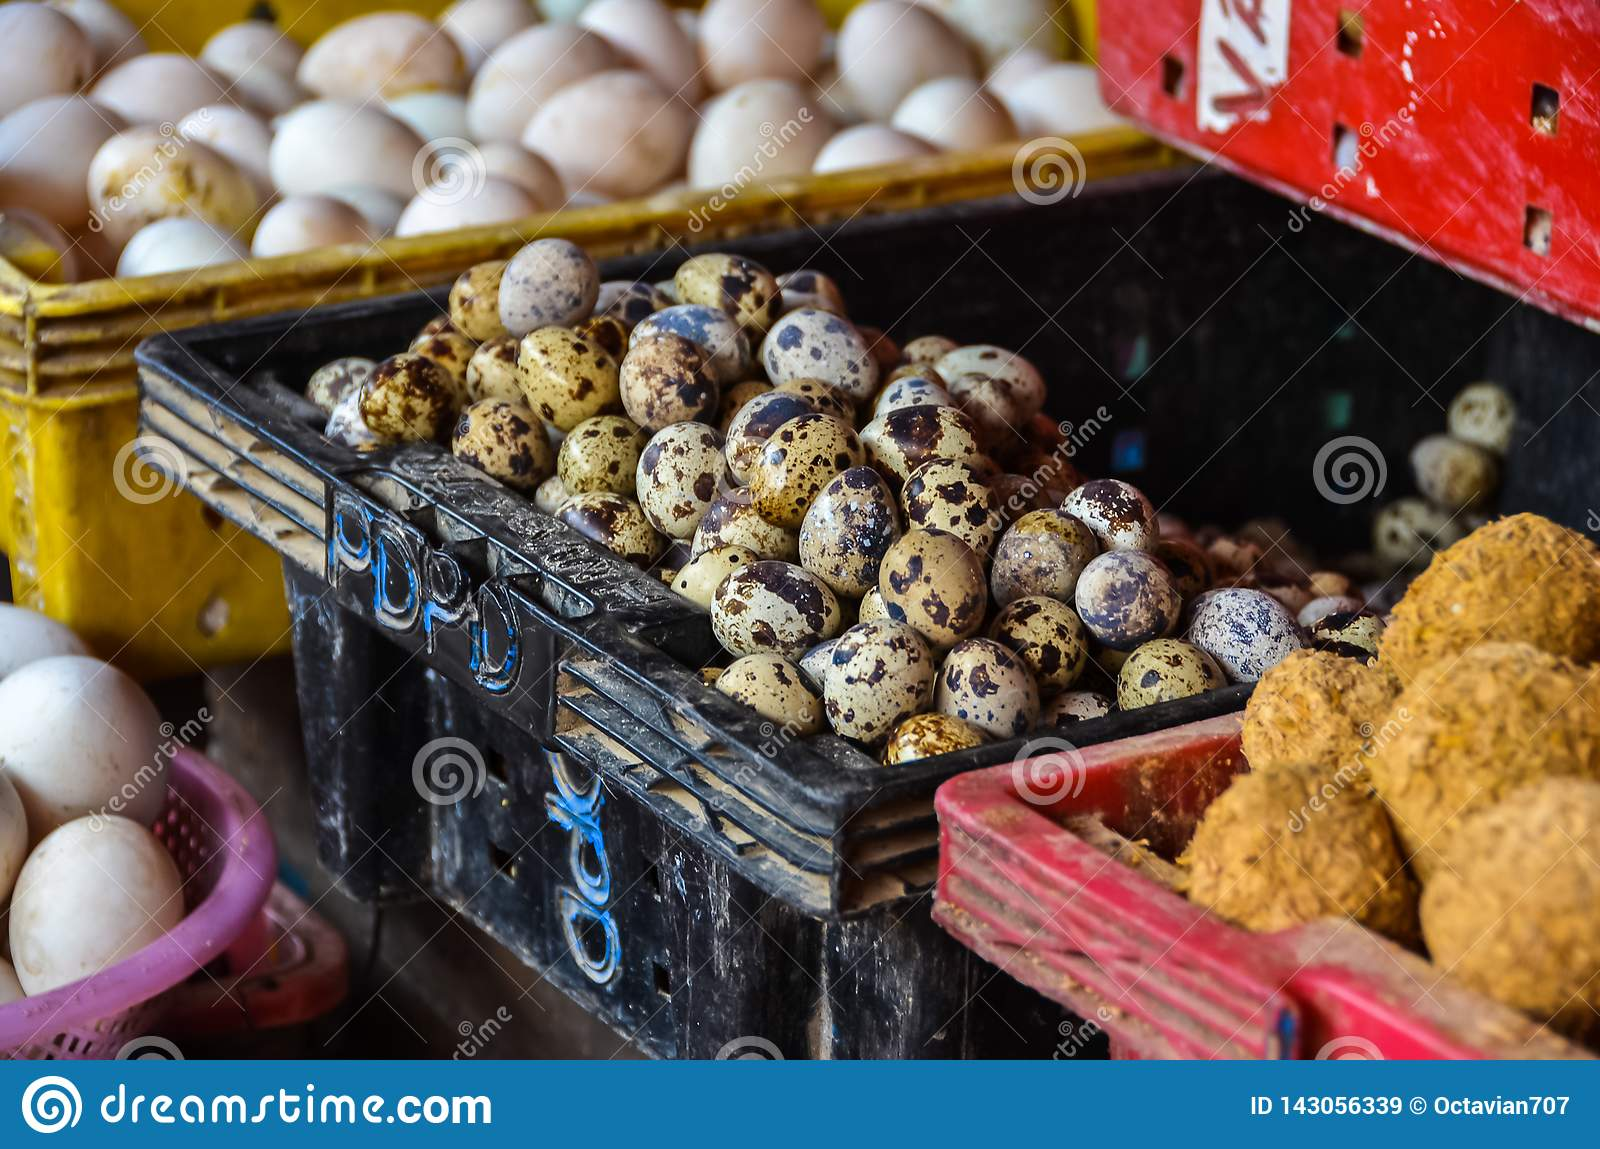 Spotted eggs for sale in market in Vietnam